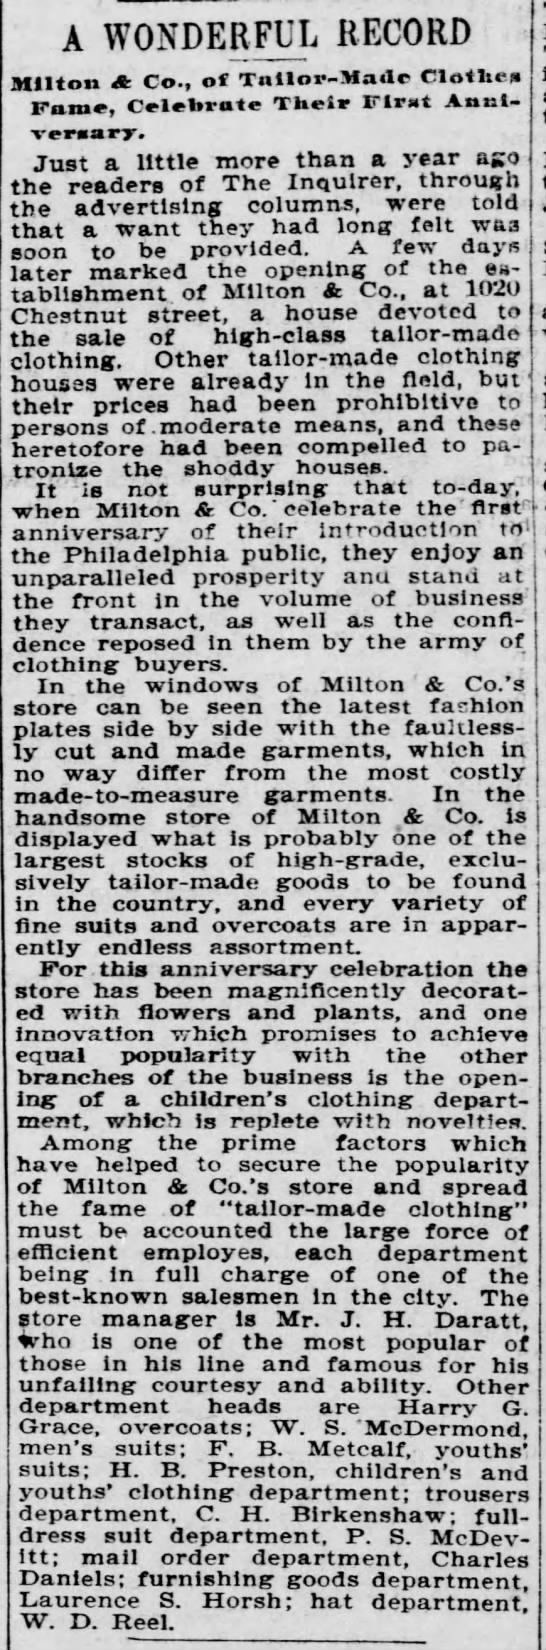 The Philadelphia Inquirer  (Philadelphia, Pennsylvania), 21 September 1895, Saturday, Page 4: A WONDERFUL RECORD--Milton & Co.., of  Tailor-Made Clothes Fame, Celebrate Their First Anniversary. Just a little more than a year ago . . . the opening of the establishment of Milton & Co., at 1020 Chestnut street  * * * Other department heads are Harry G. Grace, overcoats; W. S. McDermond, men's suits . . . .